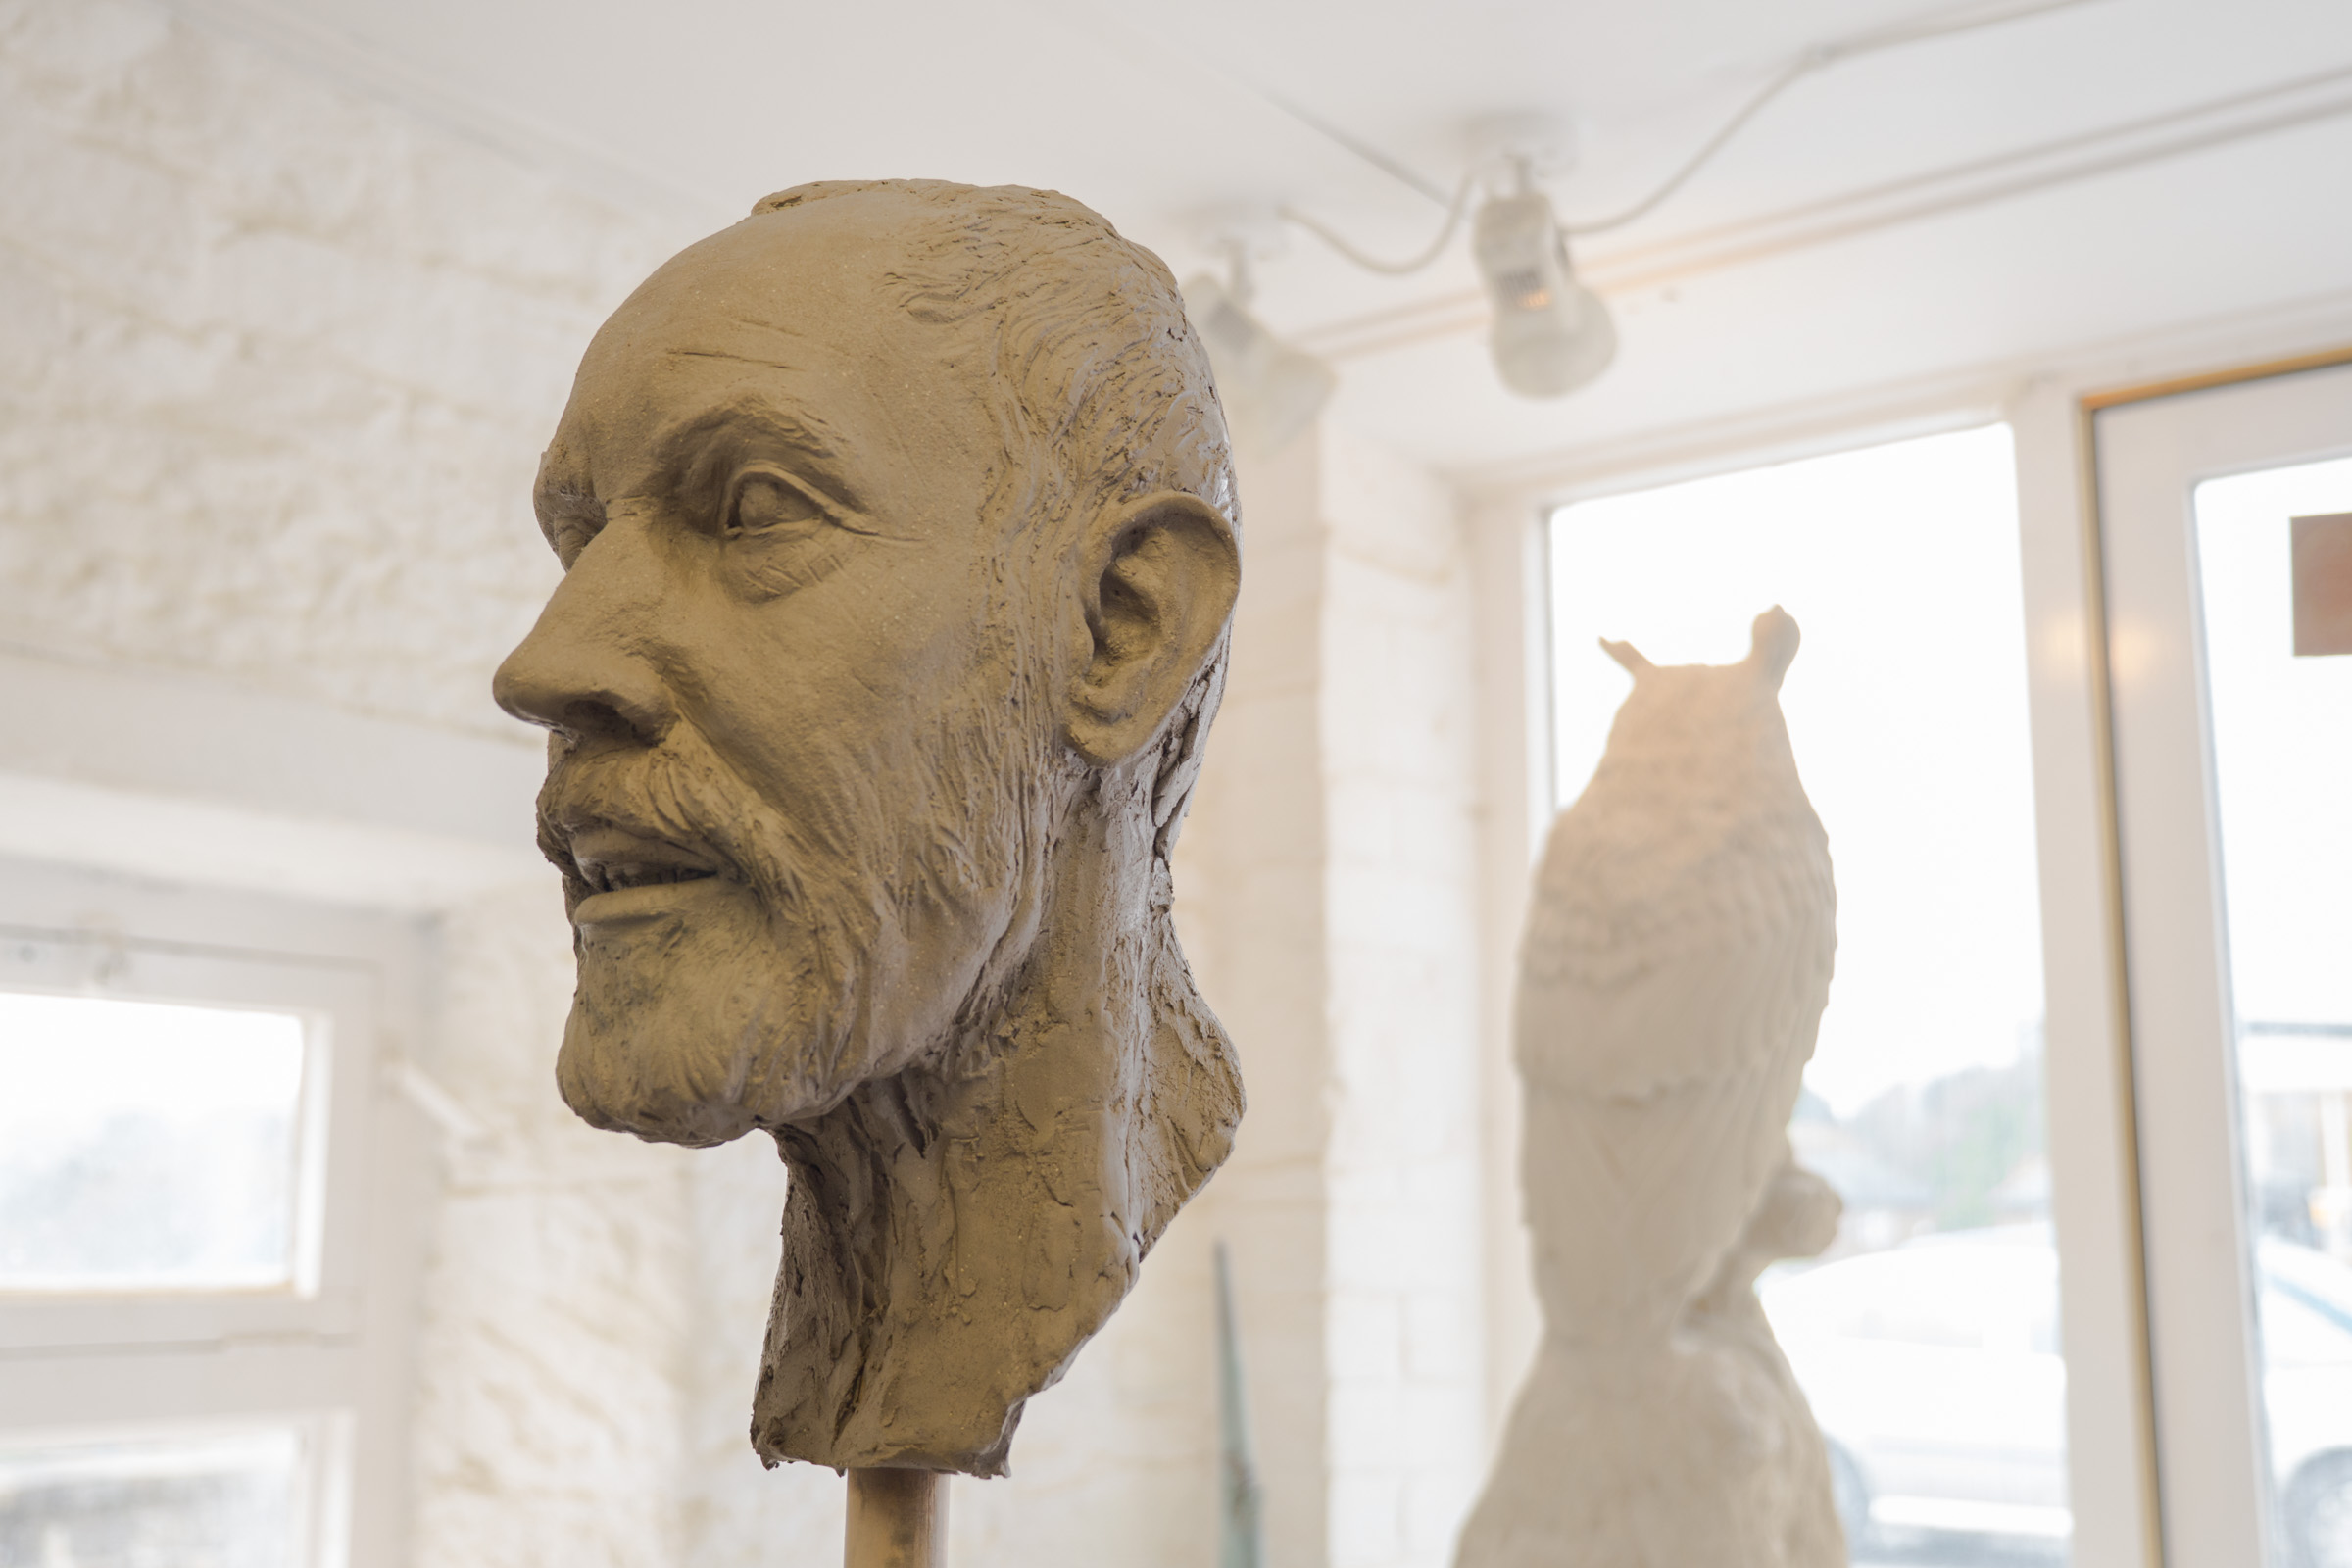 Clay Head of the miner - photo by Paul harris